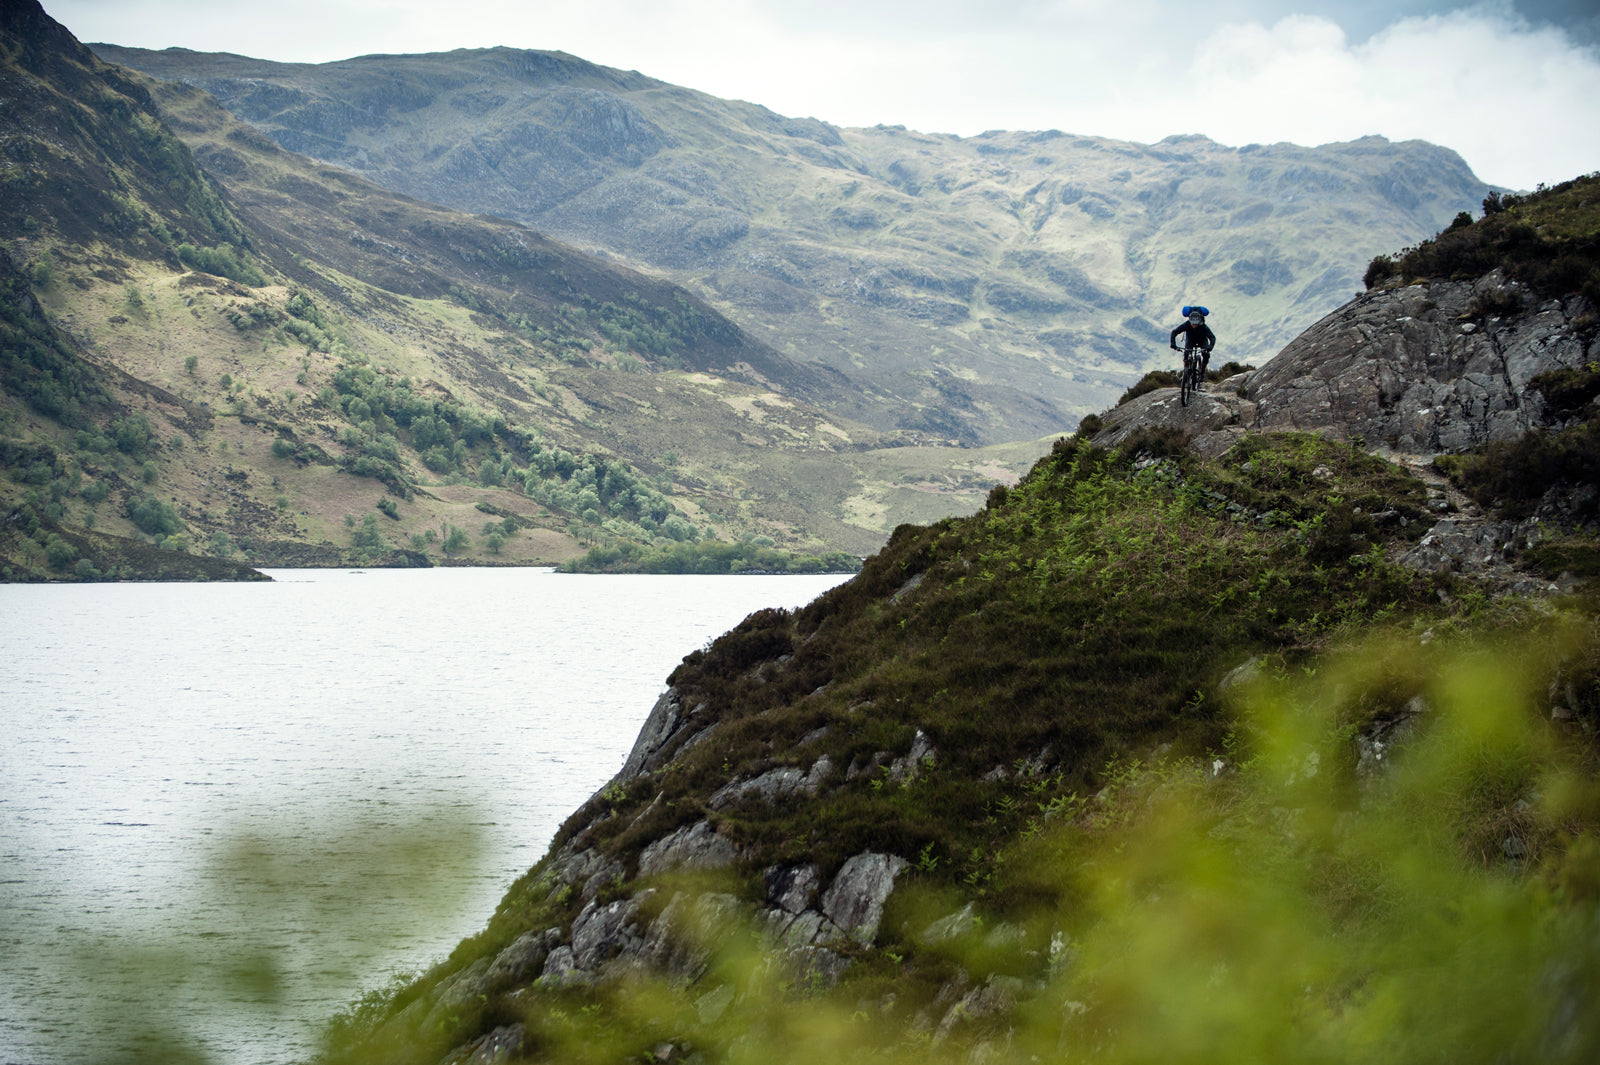 Mission Workshop Field Test : Loch - A field test in Scotland - Featuring Sam Needham, Orange Bikes, Brian Watt, Santa Cruz Bikes, and SRAM